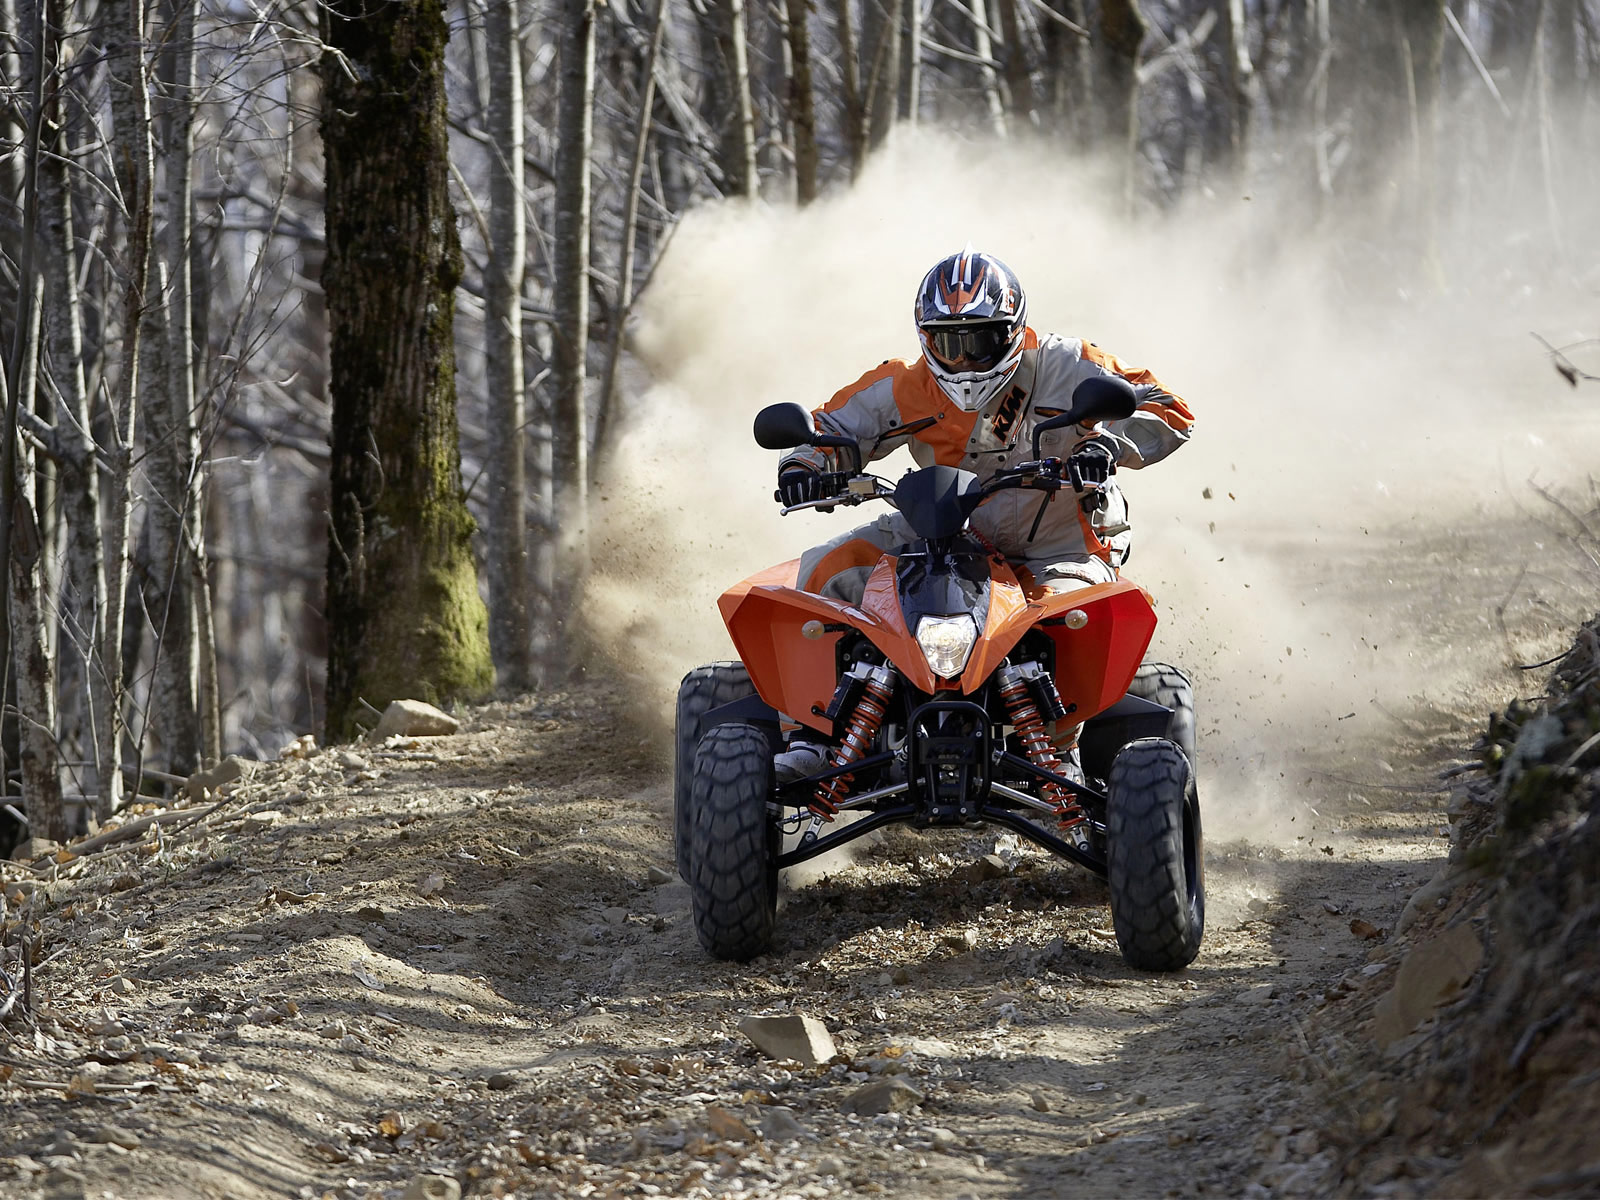 110 Wallpapers 2: 2010 KTM 525 XC ATV Pictures And Specifications